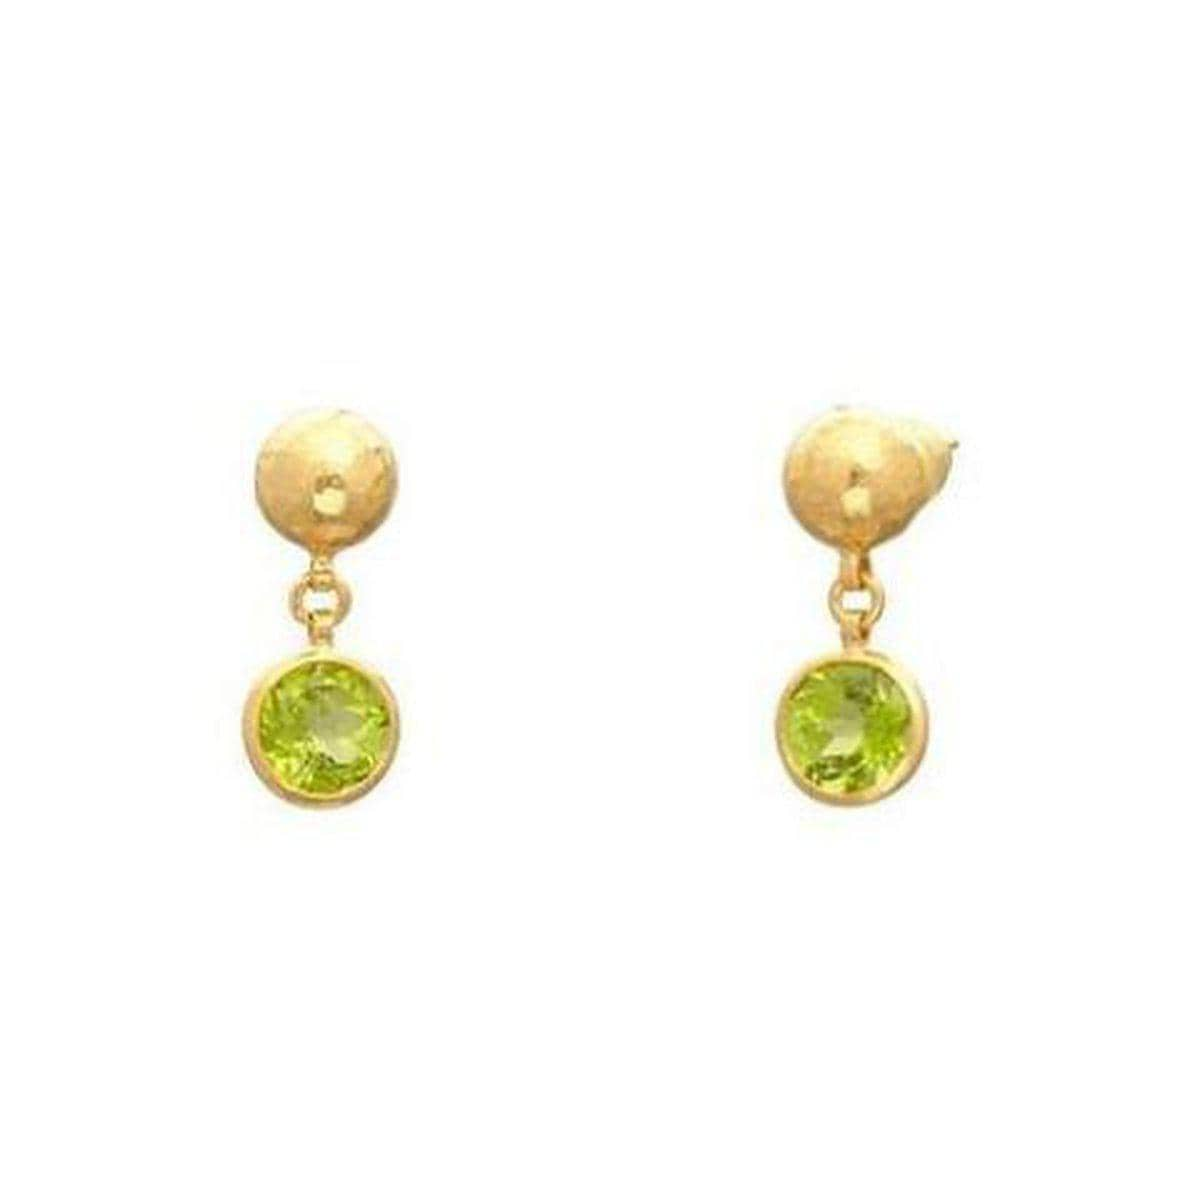 Rainbow 24K Gold Peridot Earrings - E-U25819-PD-GURHAN-Renee Taylor Gallery